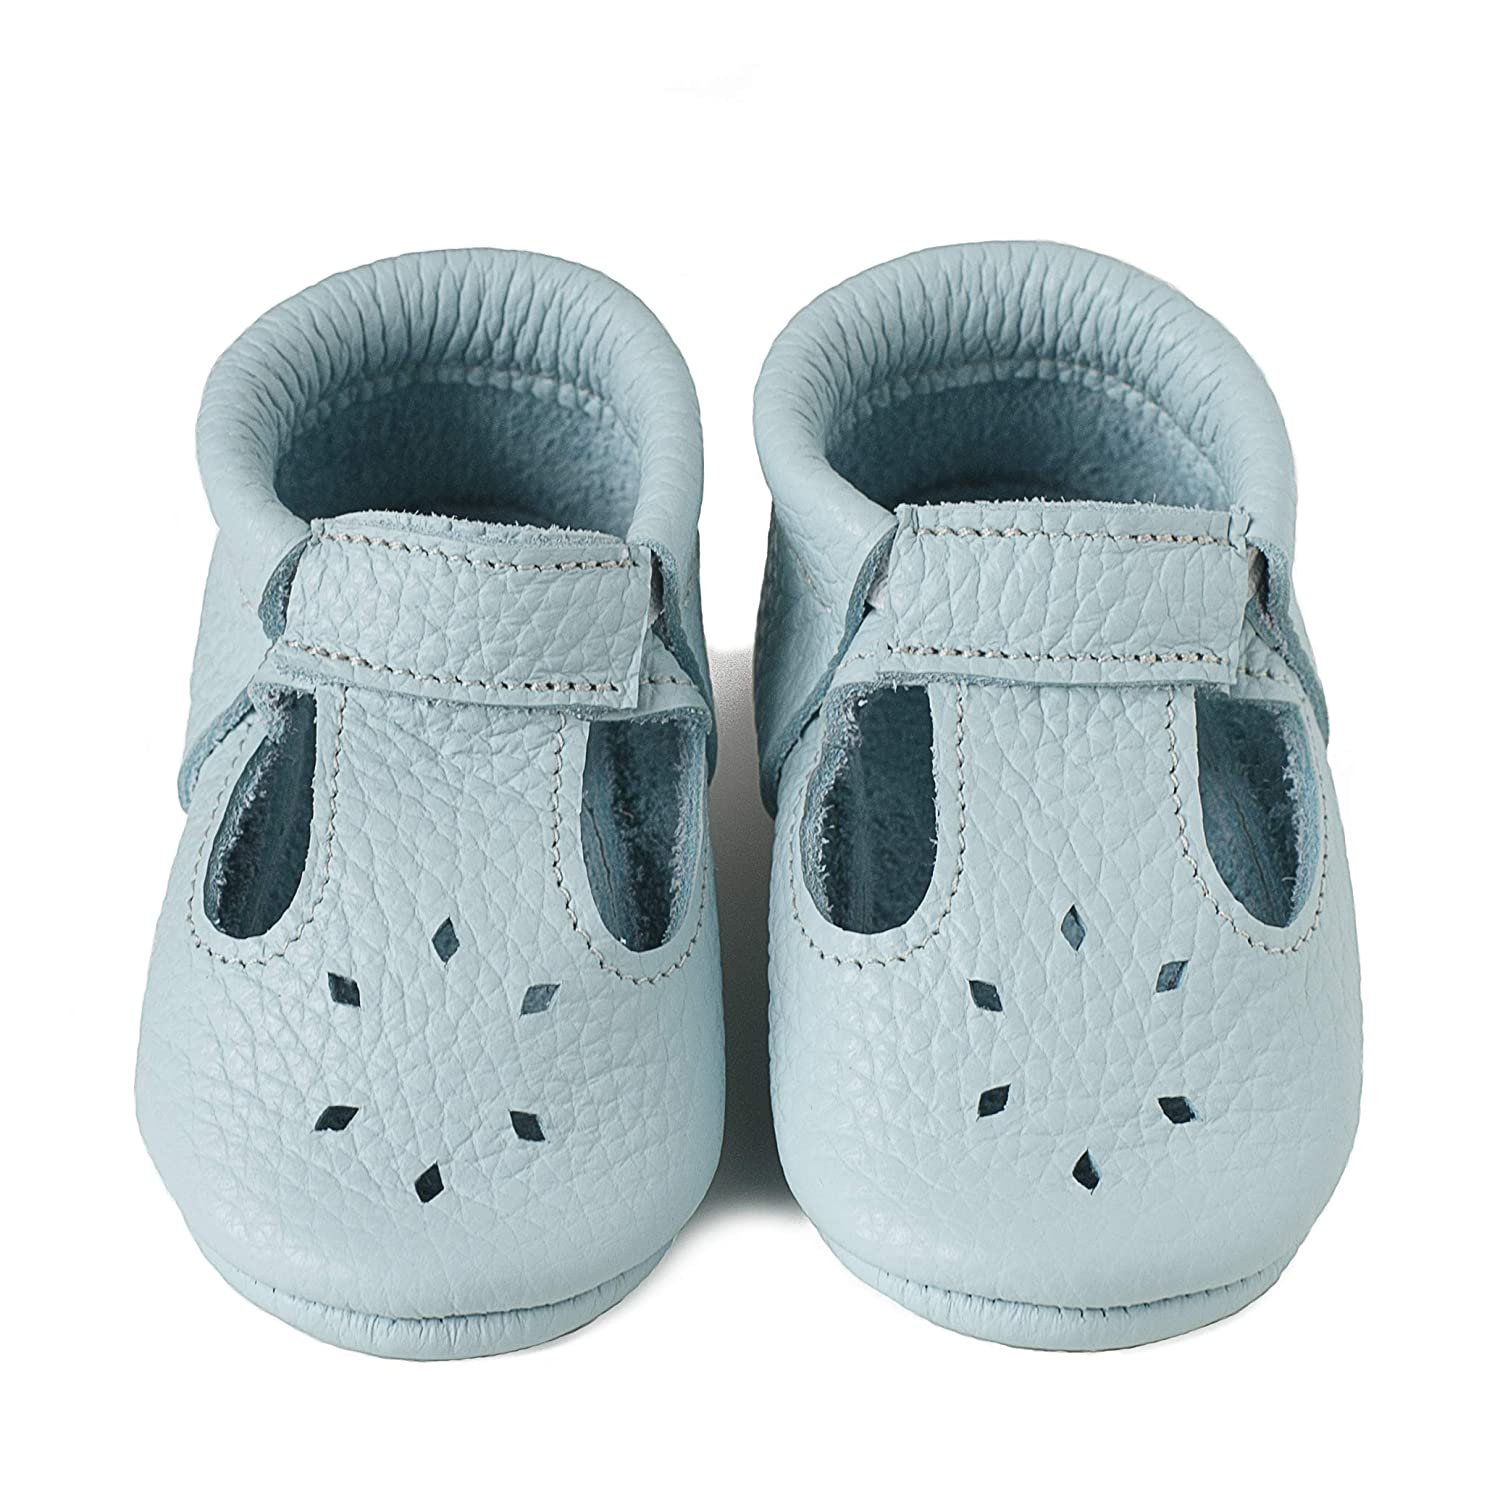 Infants Italian Leather LittleBeMocs T-Strap Baby Moccasins Soft Sole Shoes for Boys and Girls Toddlers Babies